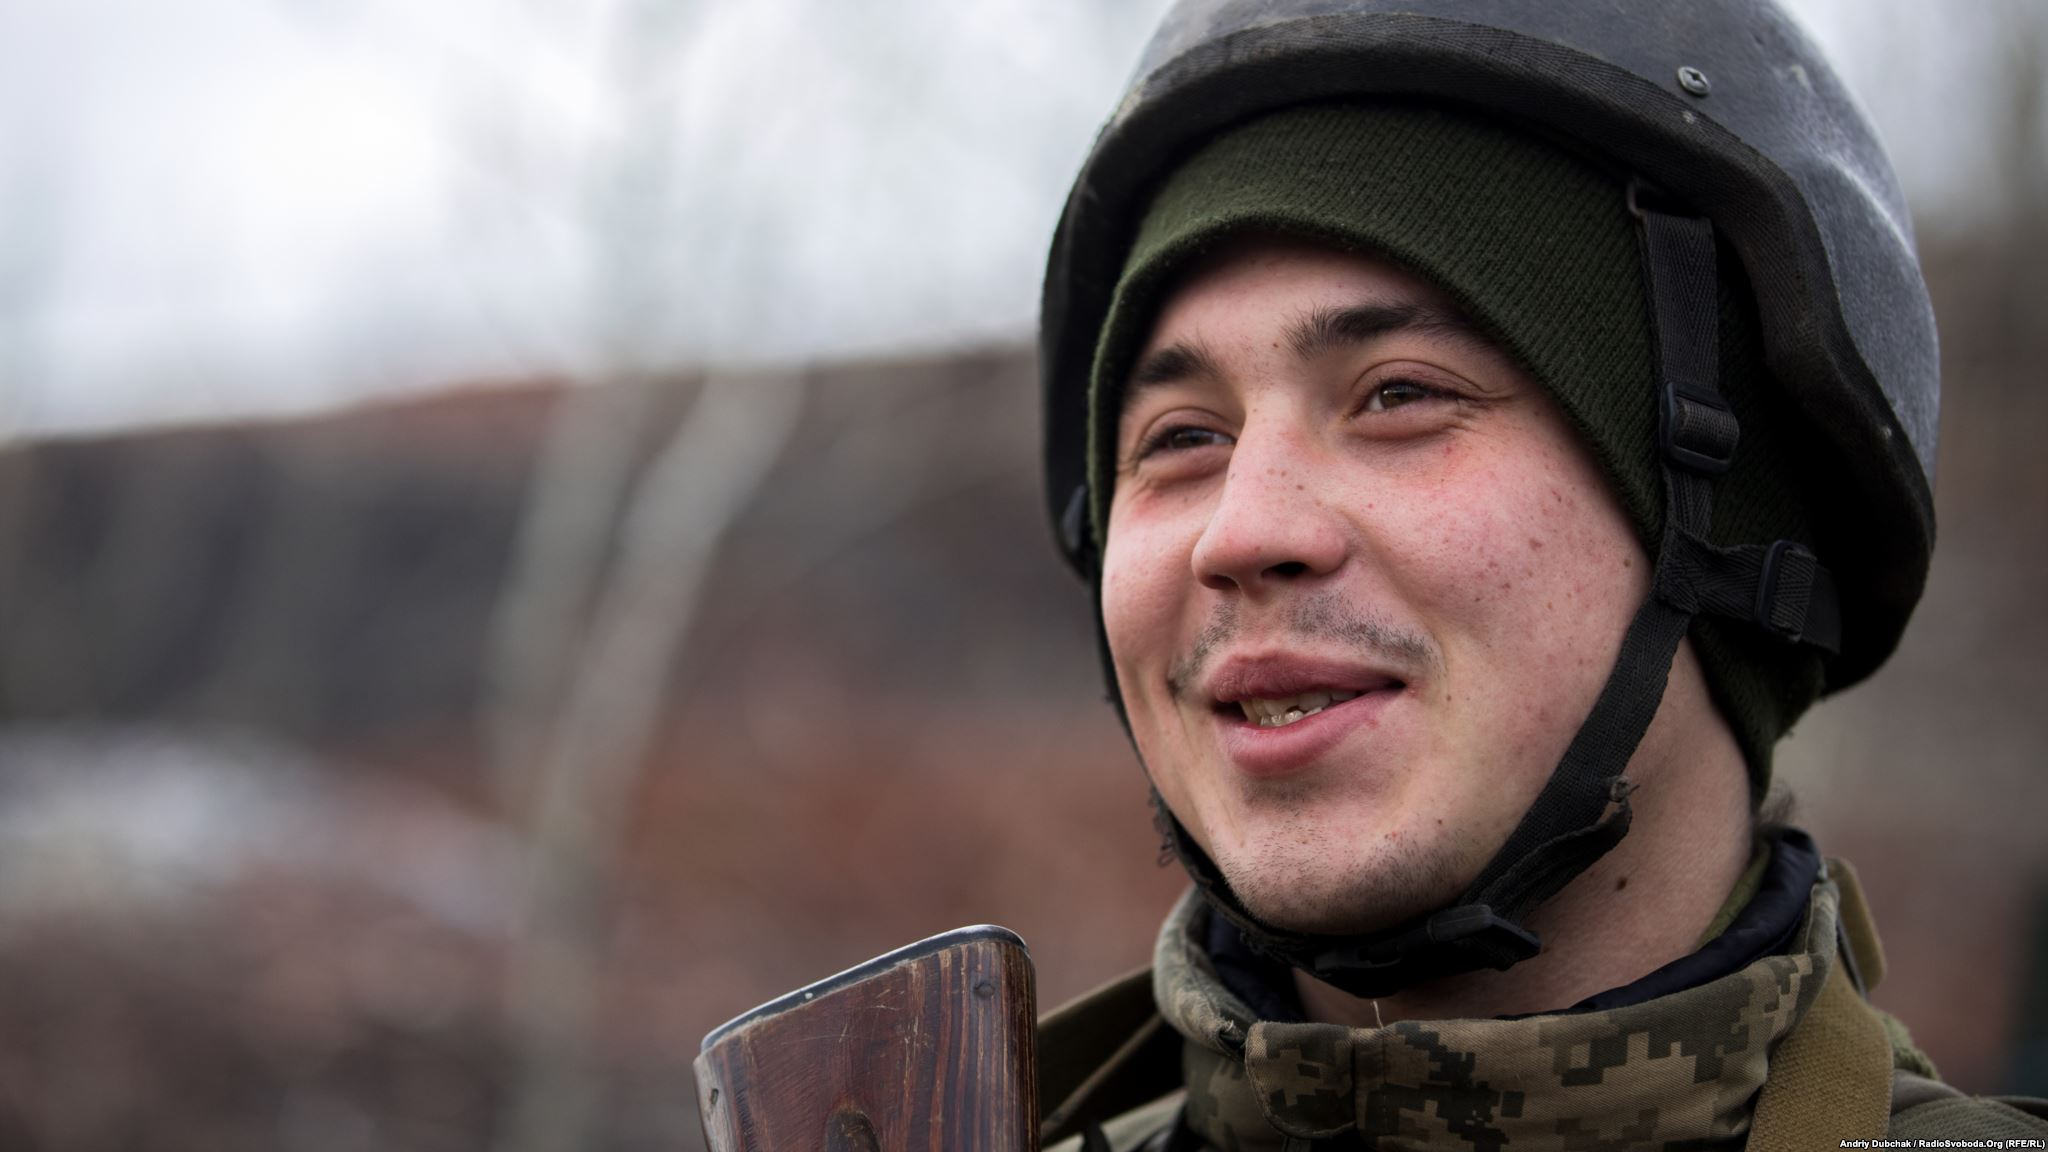 Always smiling Olexander from Kherson, 20 years old (photo by photographer Andriy Dubchak)